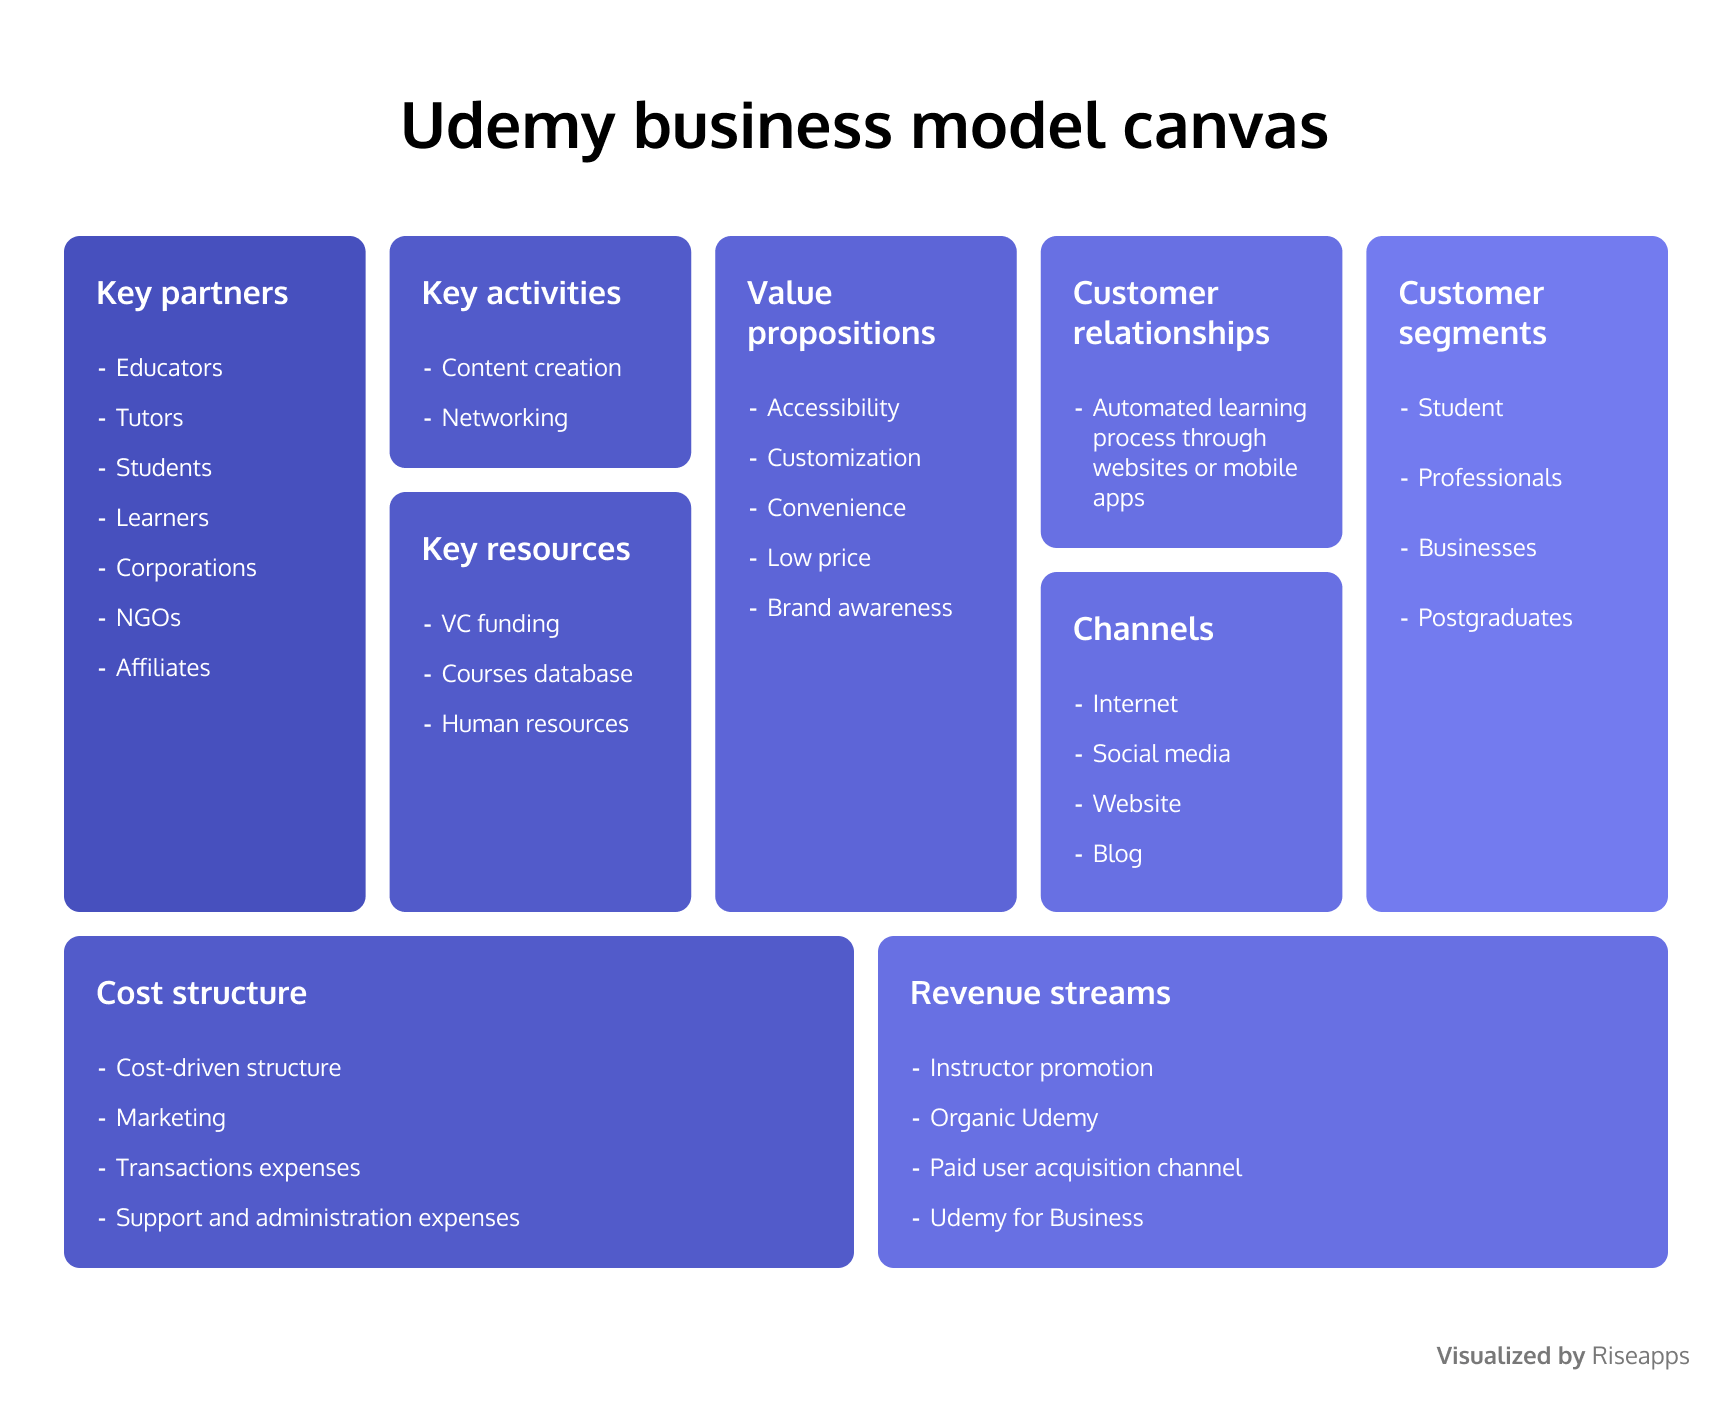 Udemy business model canvas